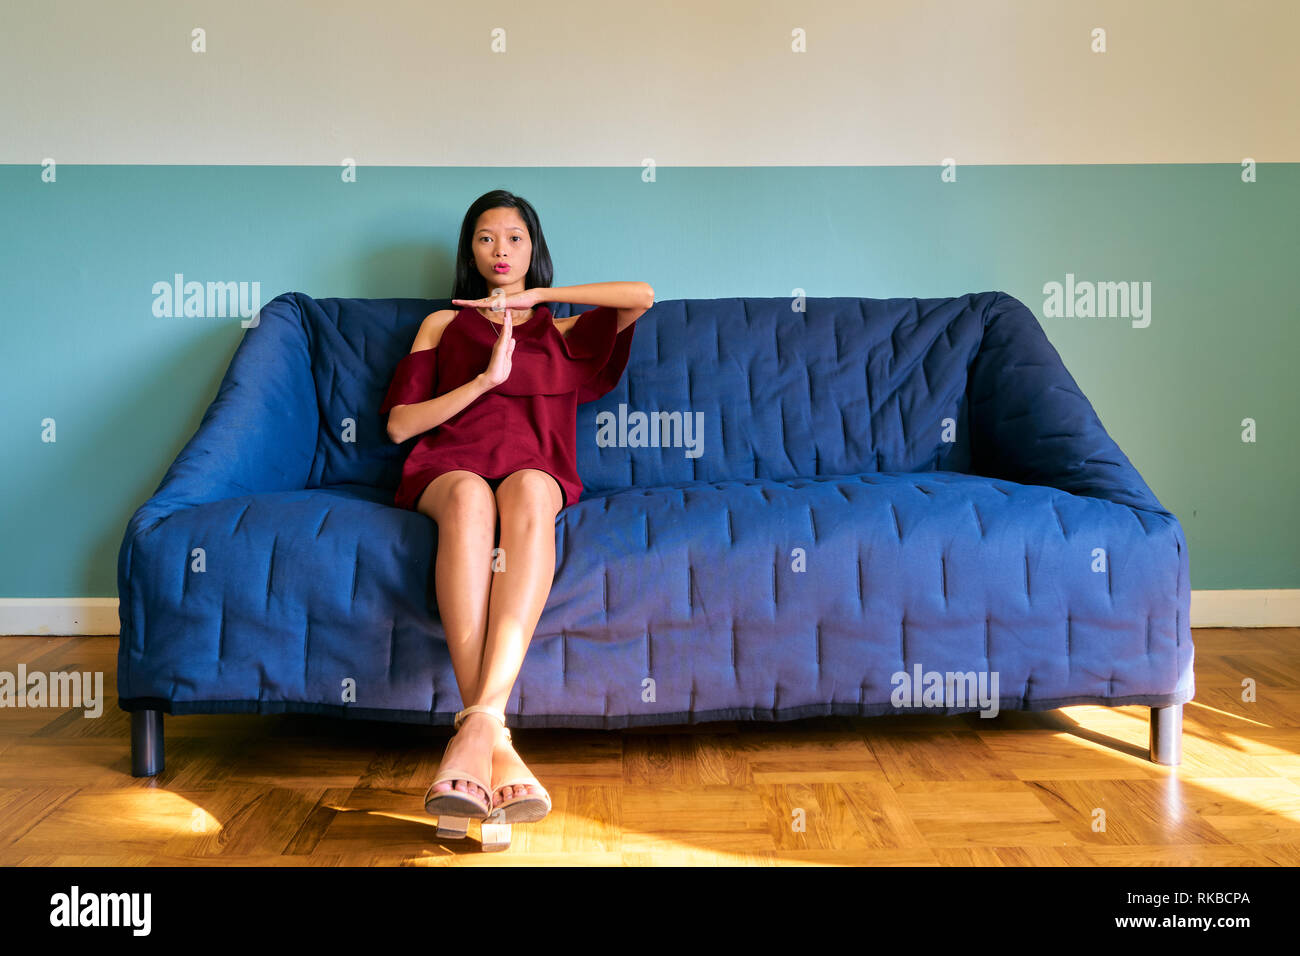 Beautiful woman posing - serious young woman sit on sofa. She shows stop sign with hands. - Stock Image